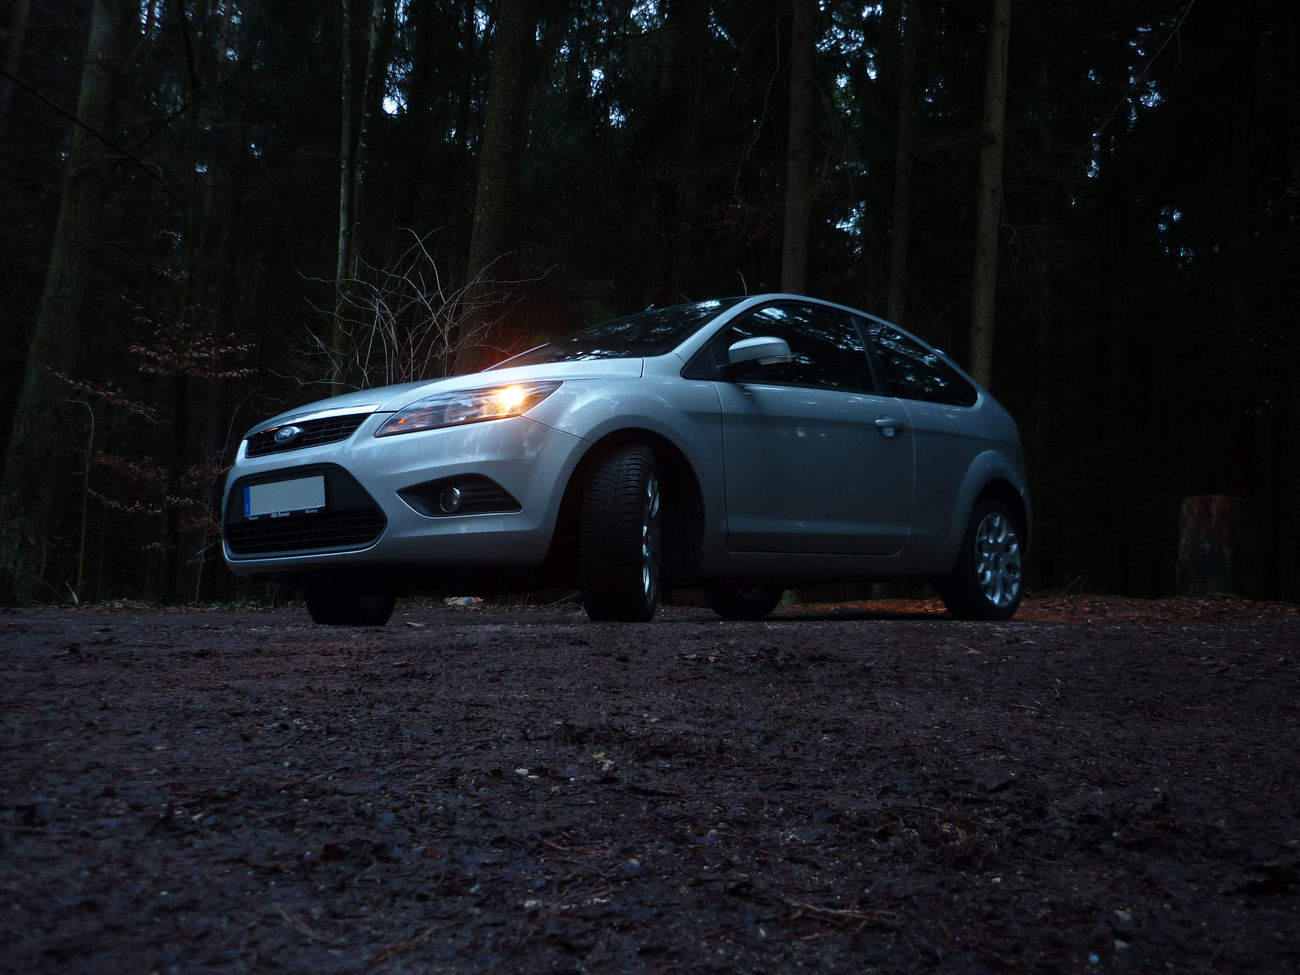 Ant View Car Dark Dirty Ford Ford Focus Forest Light Outdoors Parking Side View Travel